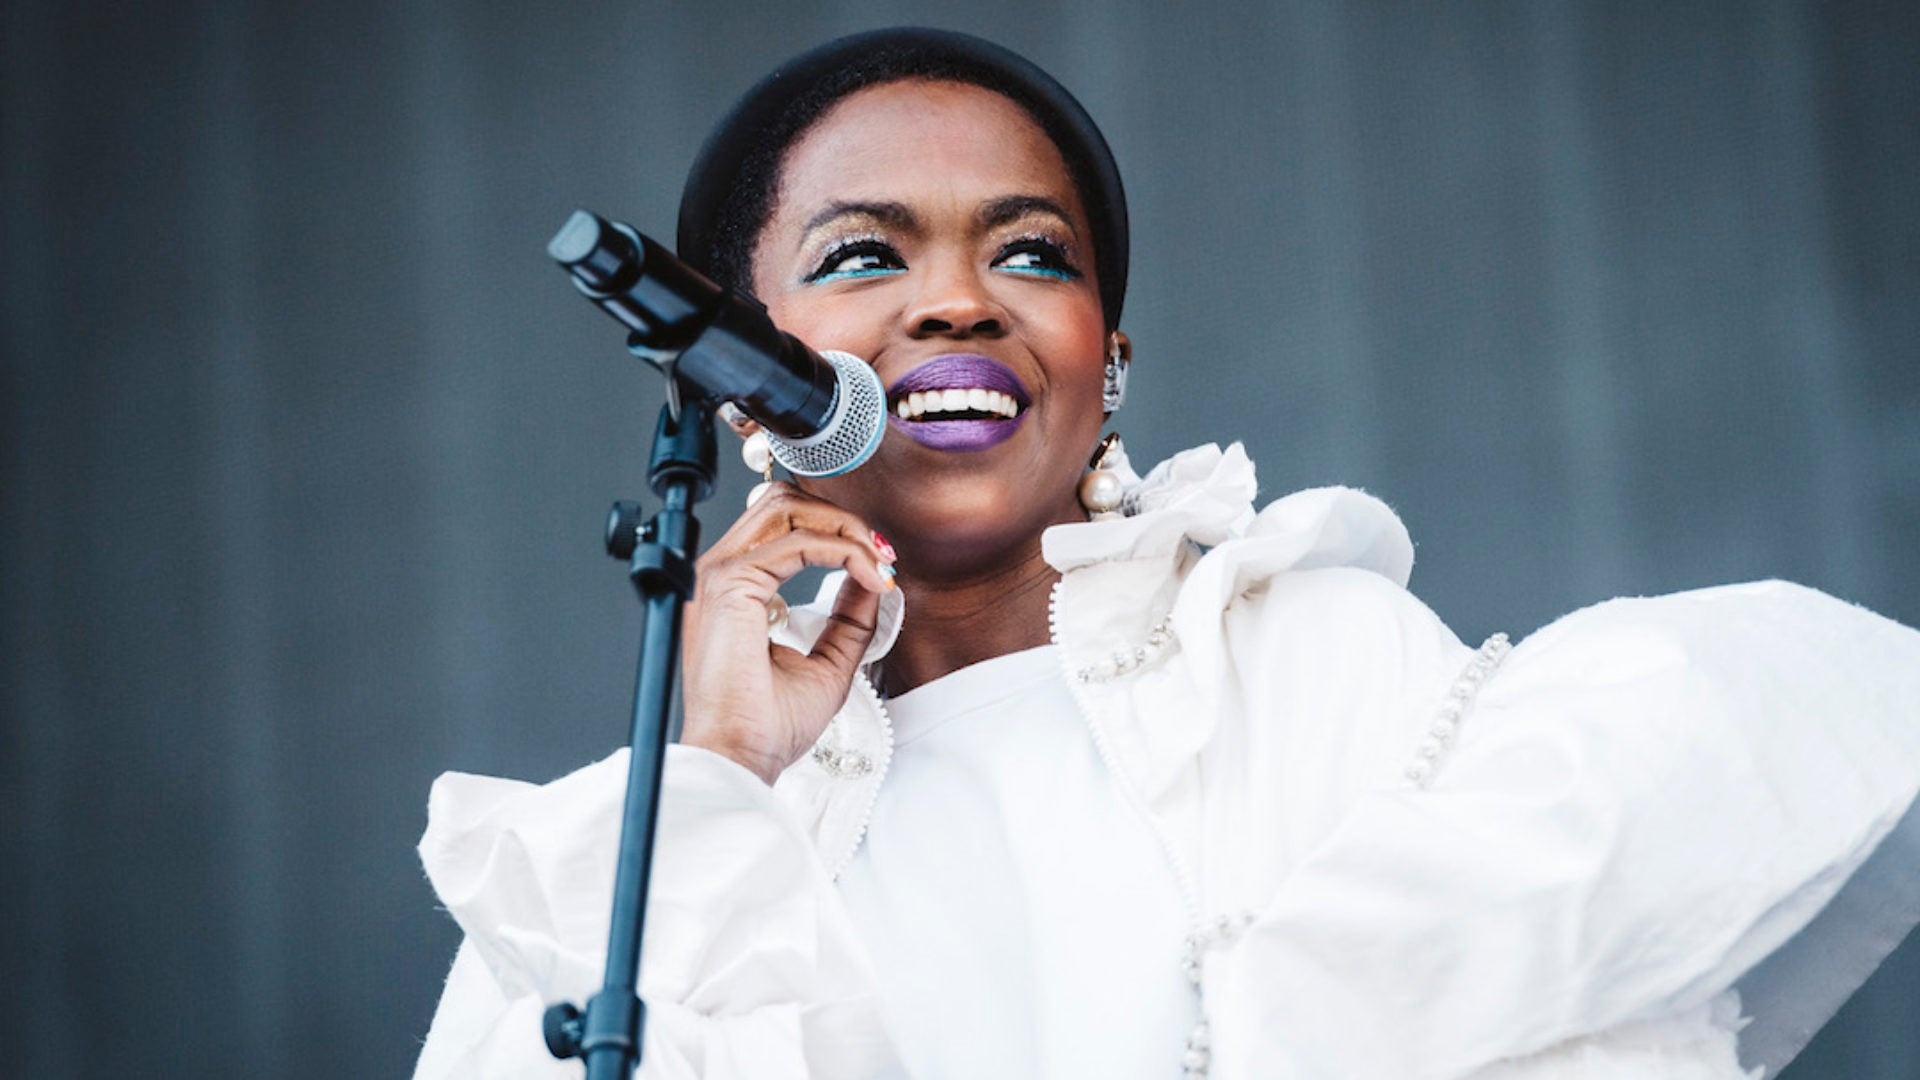 Lauryn Hill Releases First Solo Single In 5 Years